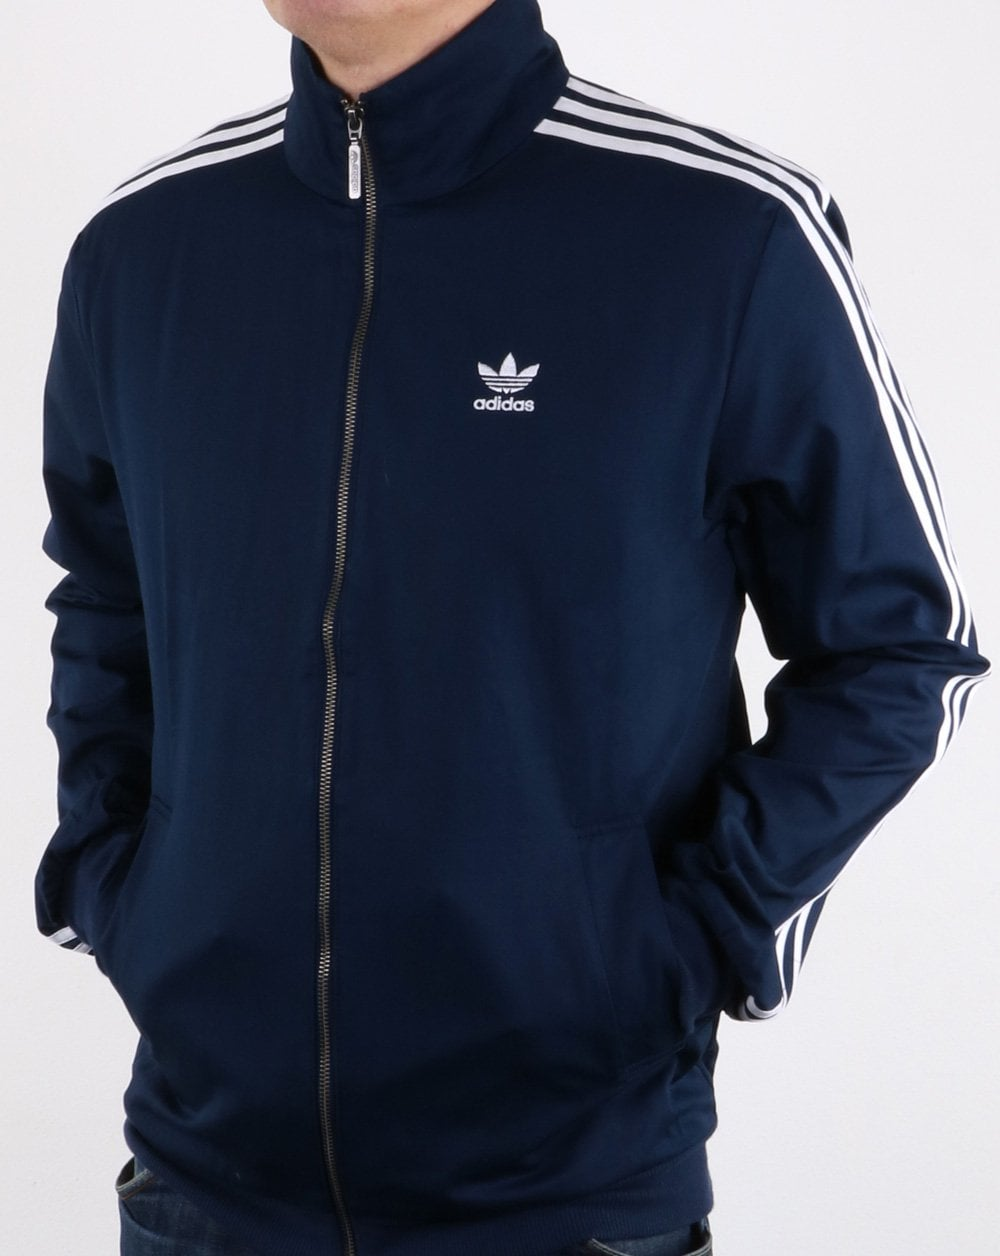 Buy Here Pay Here Ma >> Adidas Originals Beckenbauer Track Top Navy | 80s casual ...